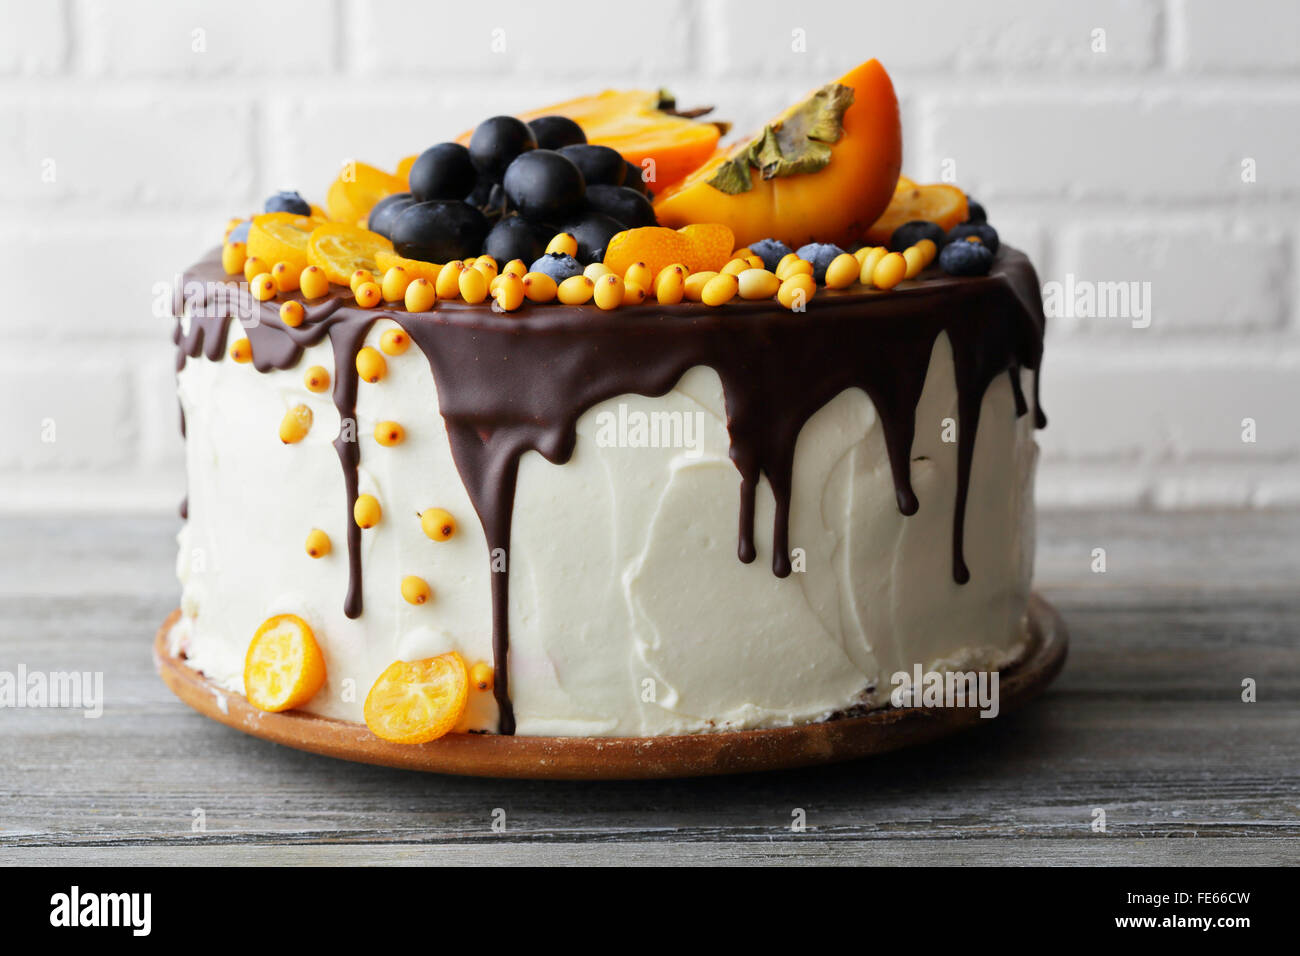 cake with fruits and cream, food closeup - Stock Image